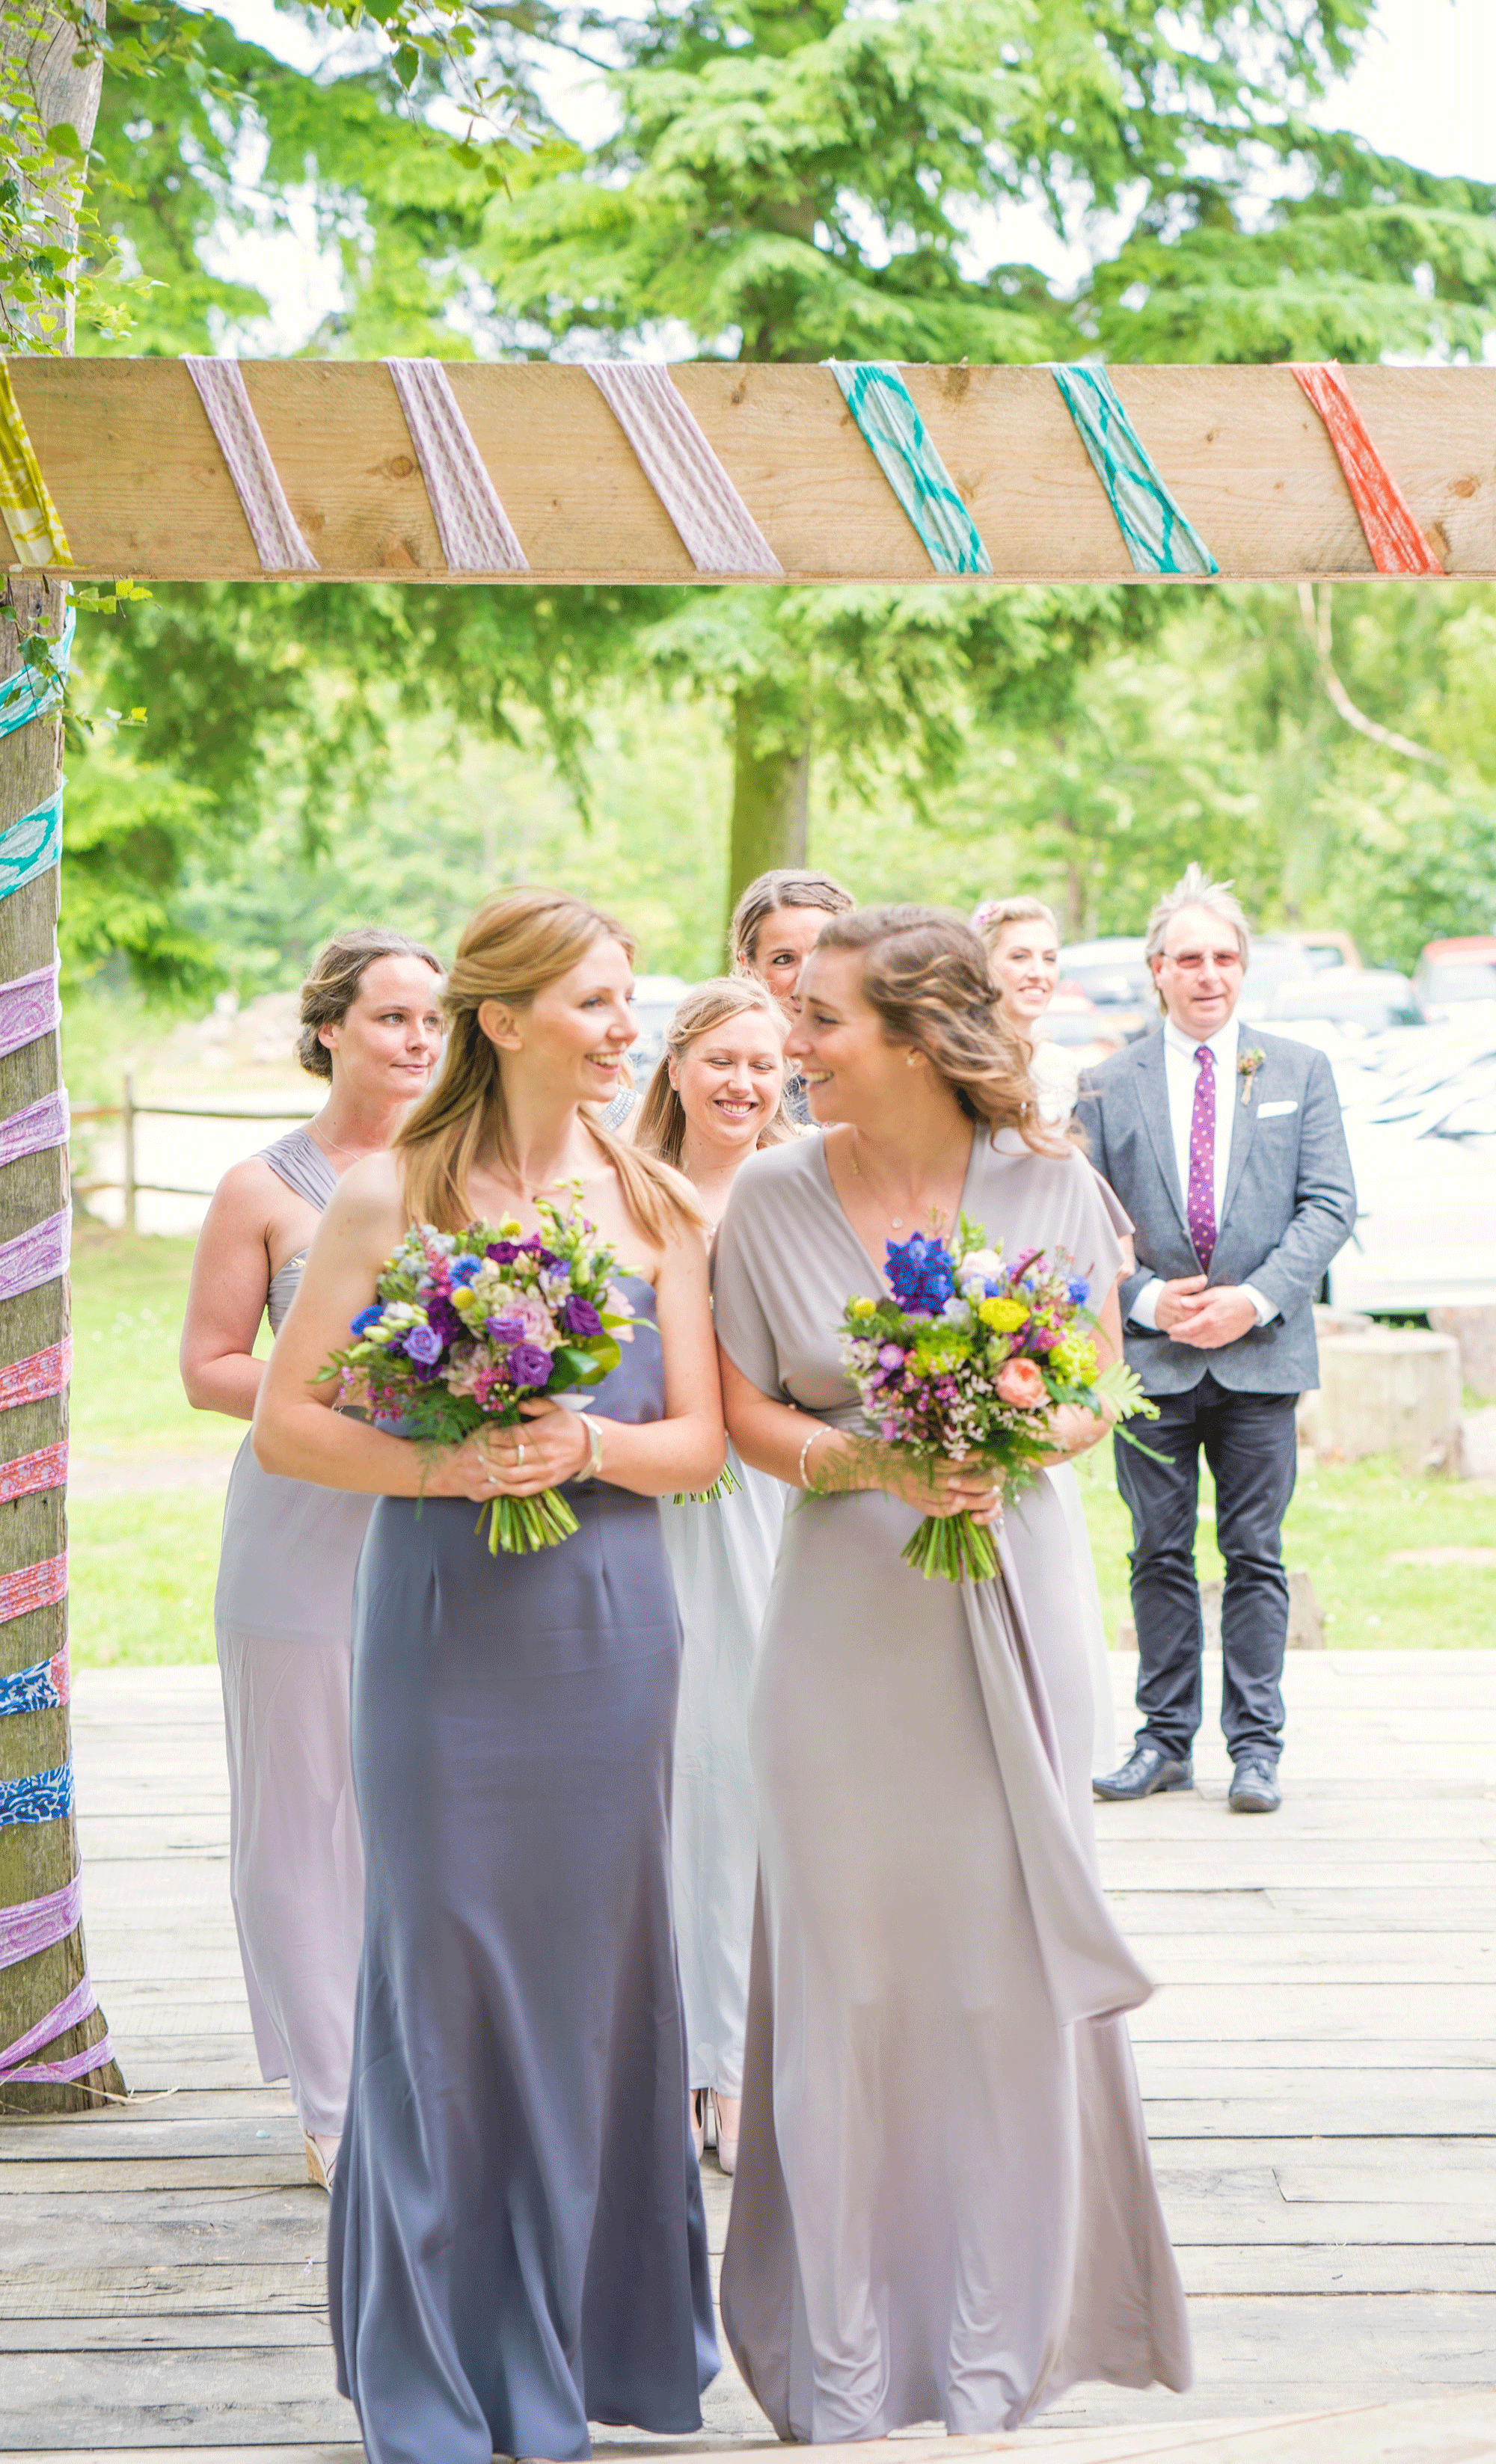 Katie-&-Ali-2016--Henaux-Photography---066.png